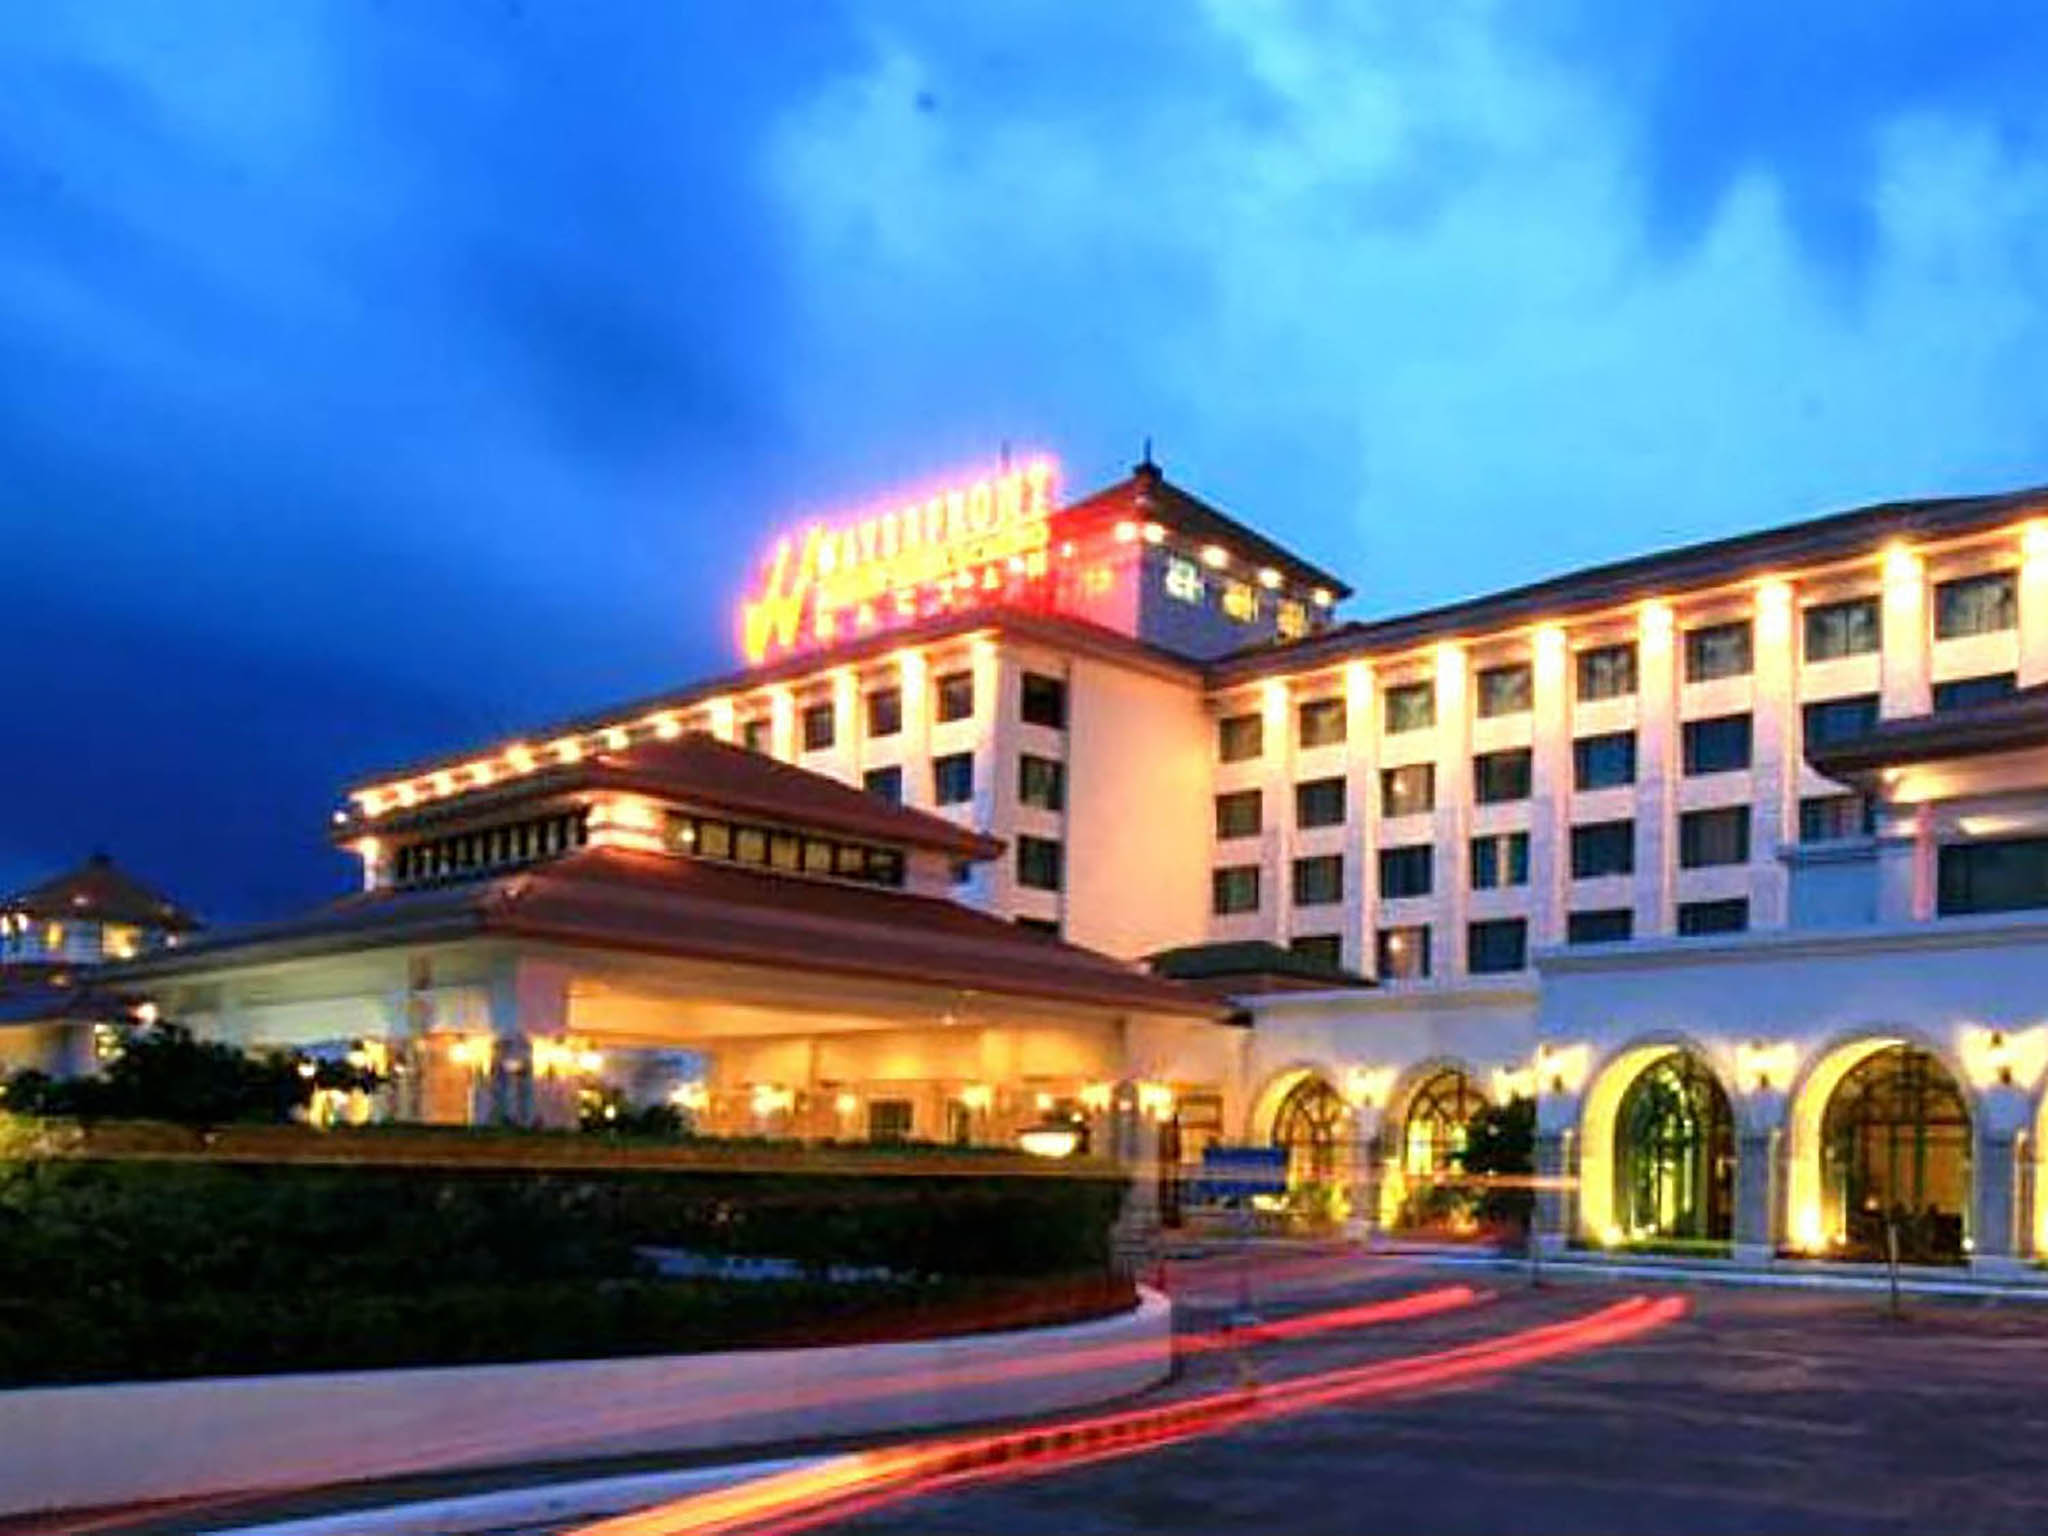 Waterfront airport hotel and casino gambling nights